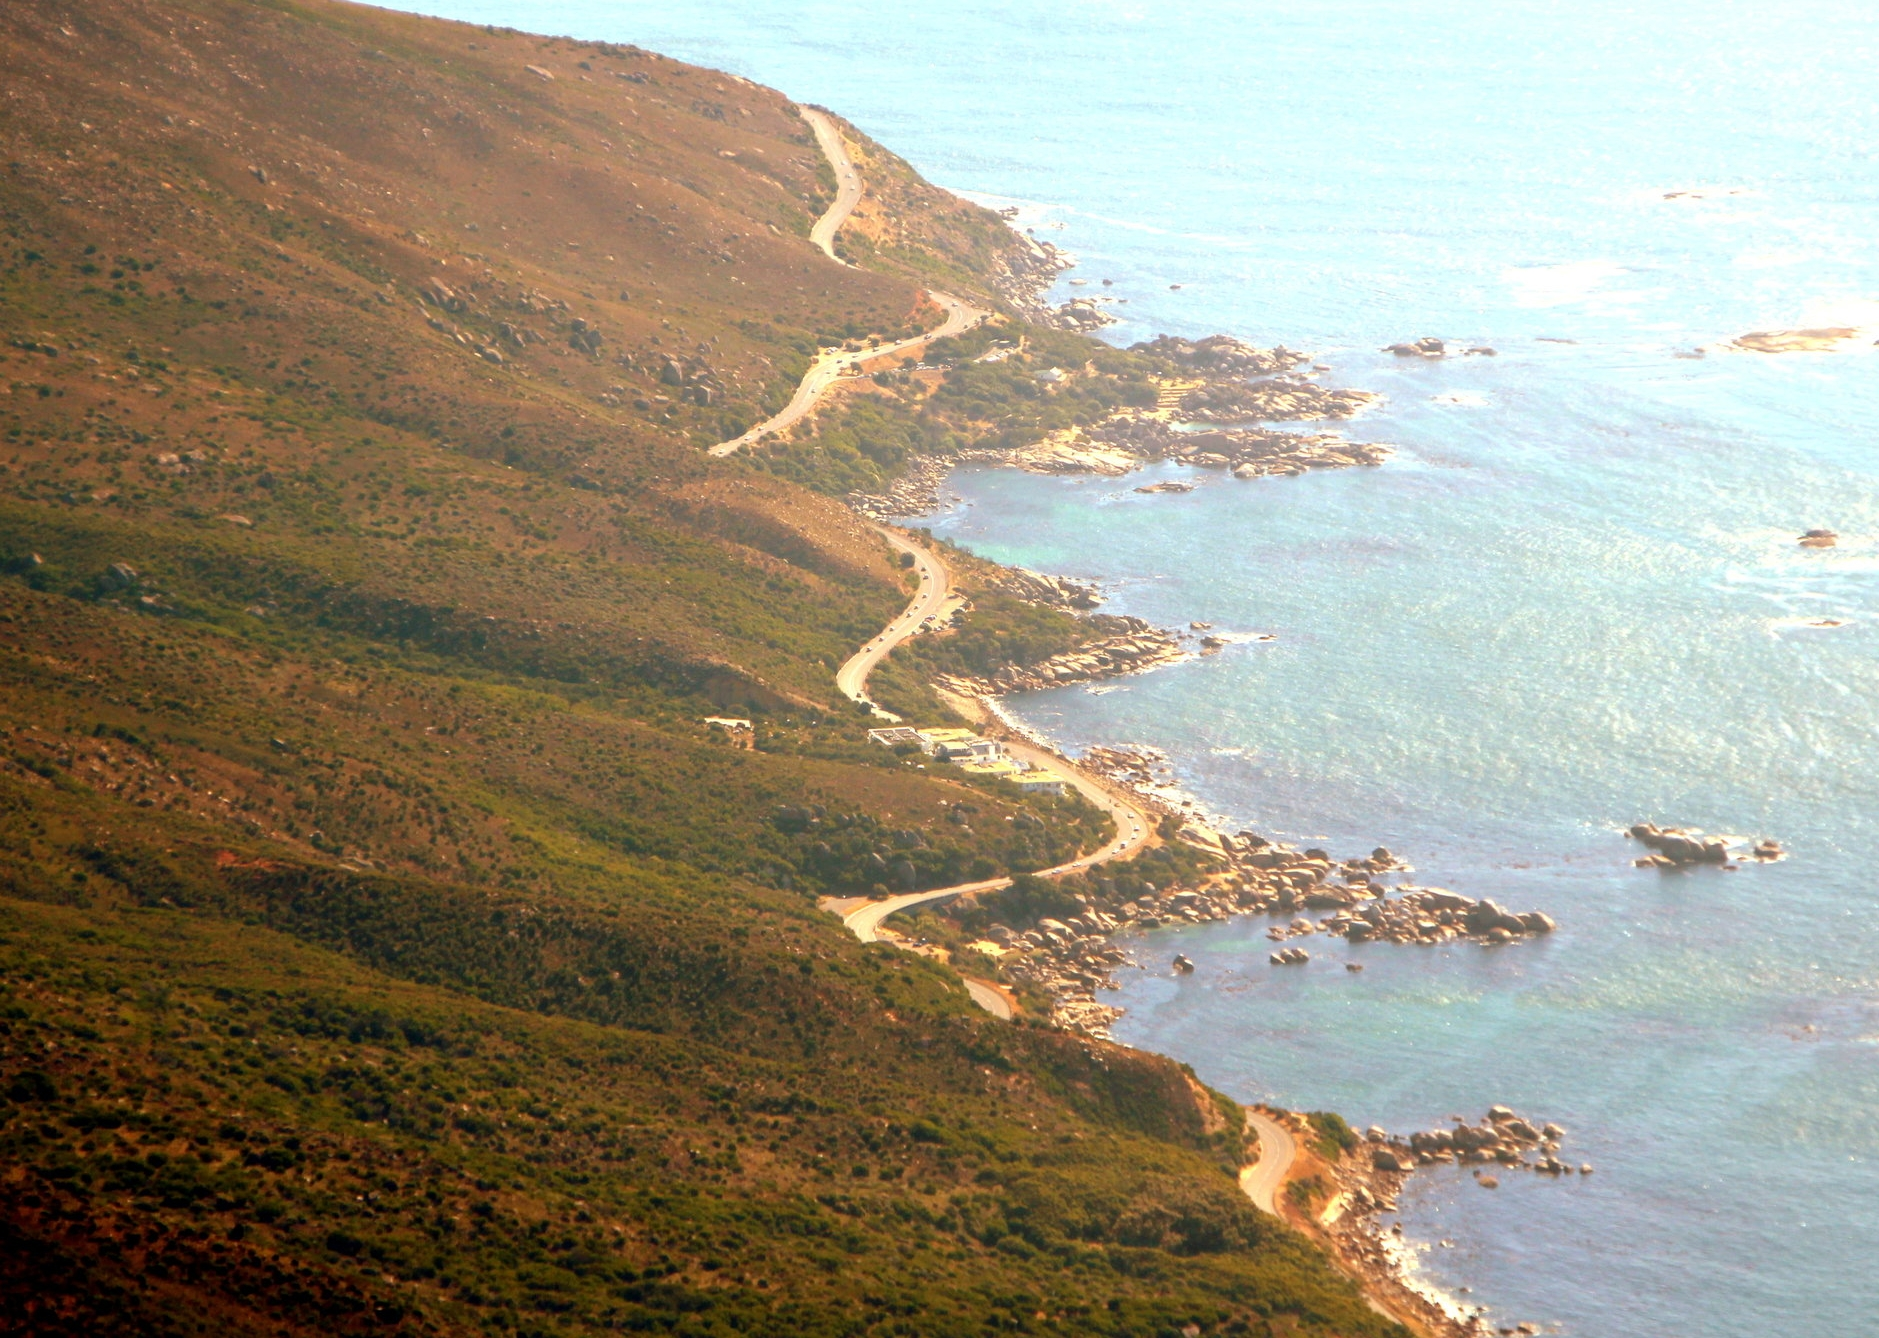 Winding Roads that run parallel to the sea